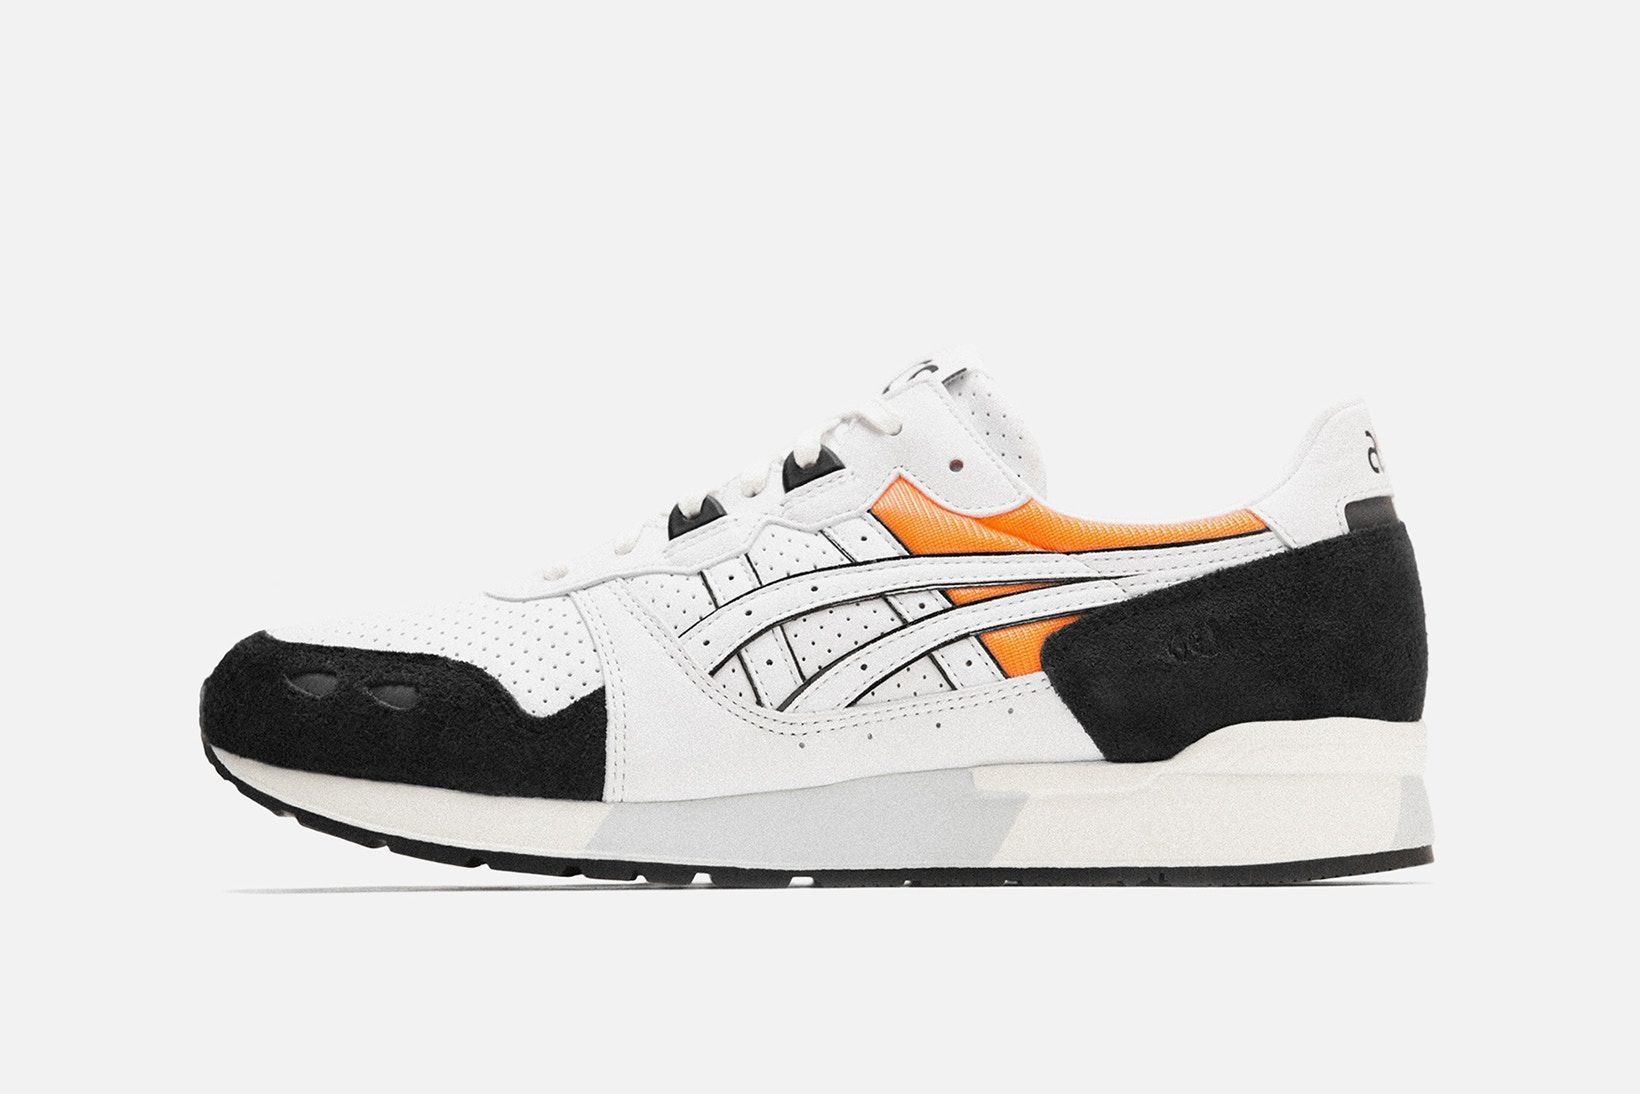 size 40 96676 7057f ASICSTIGER Celebrates Its 30 Year Anniversary in the GEL-LYTE® Model ...